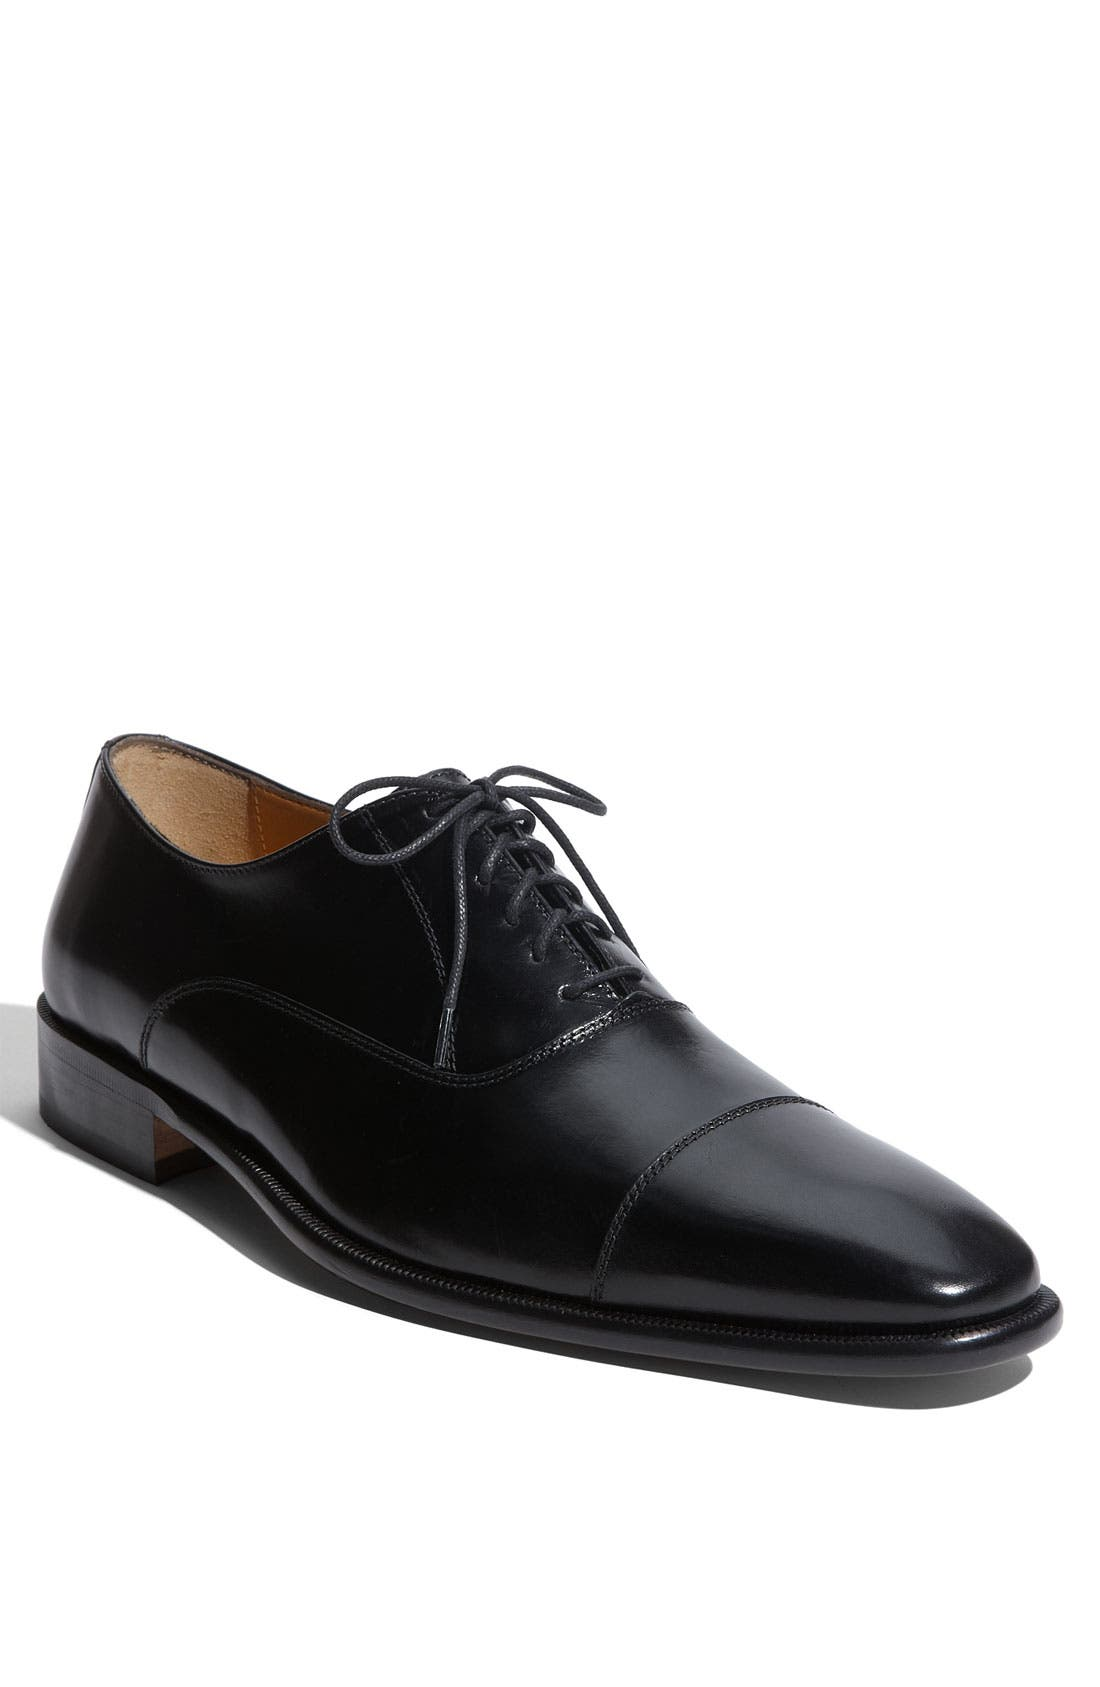 Alternate Image 1 Selected - John W. Nordstrom® 'Lido' Oxford